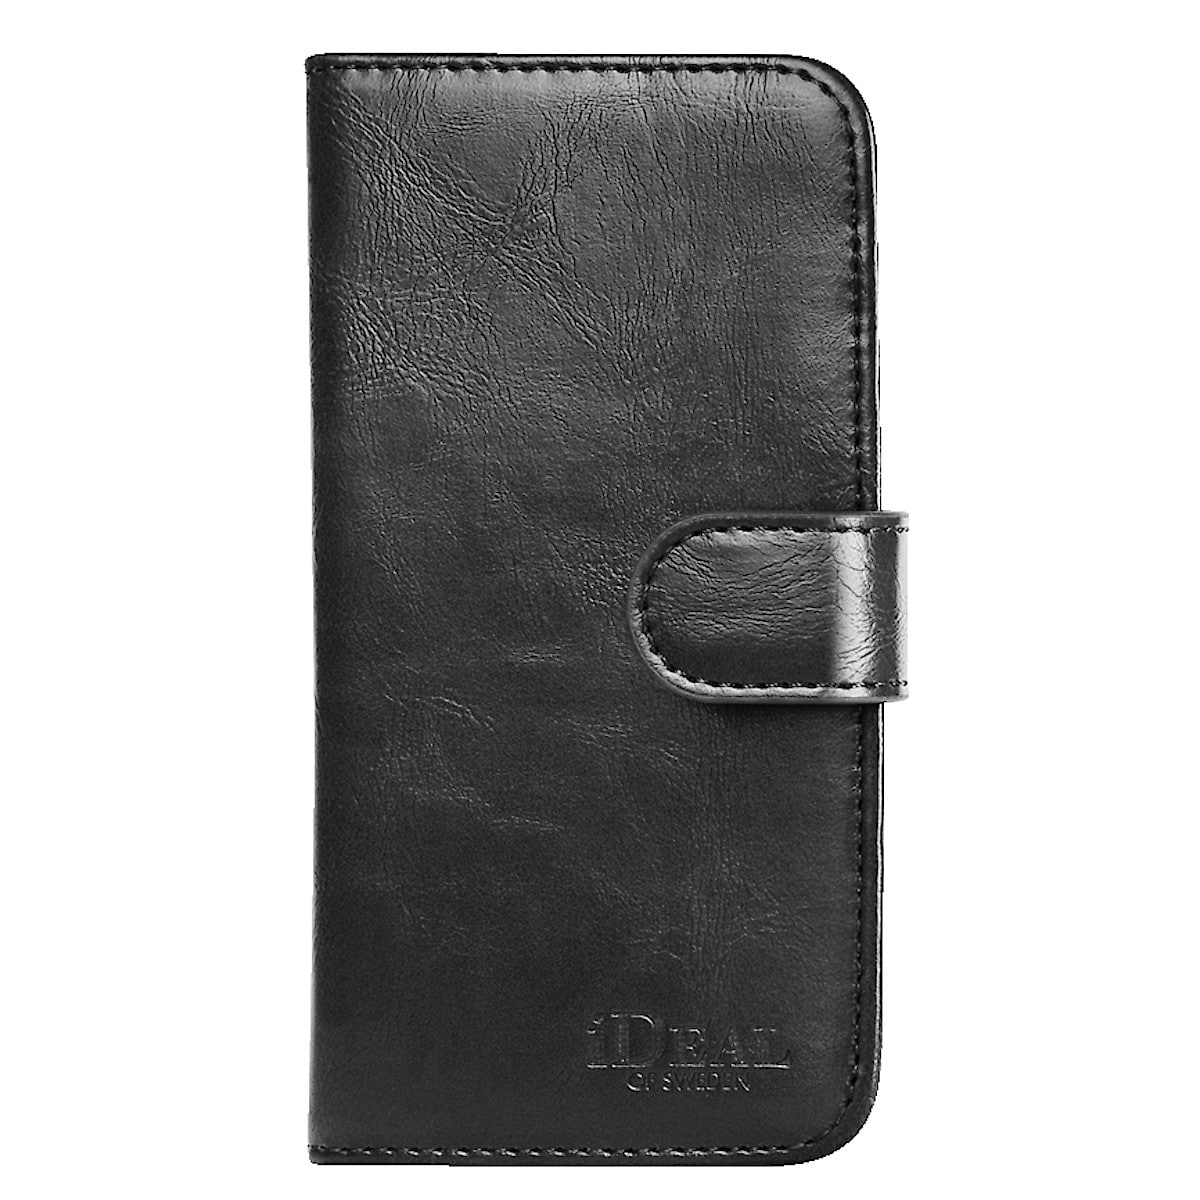 iDeal of Sweden Wallet Case for iPhone 8